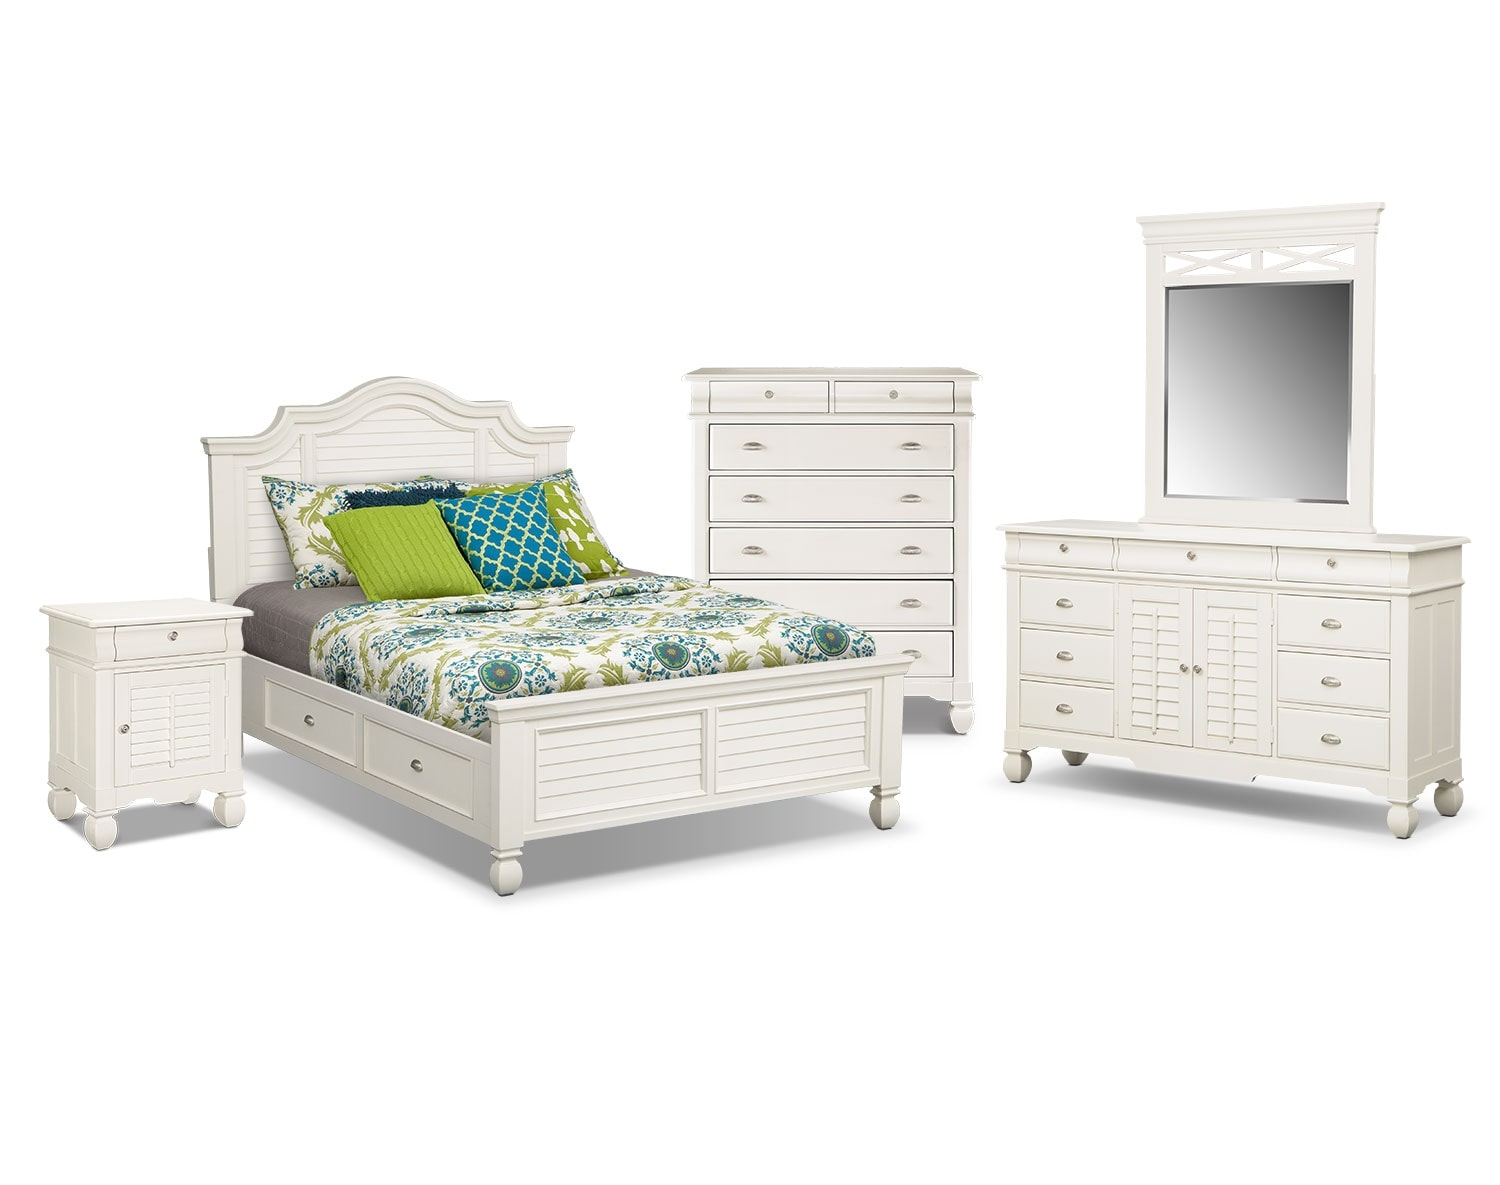 The Plantation Cove Storage Bedroom Collection - White